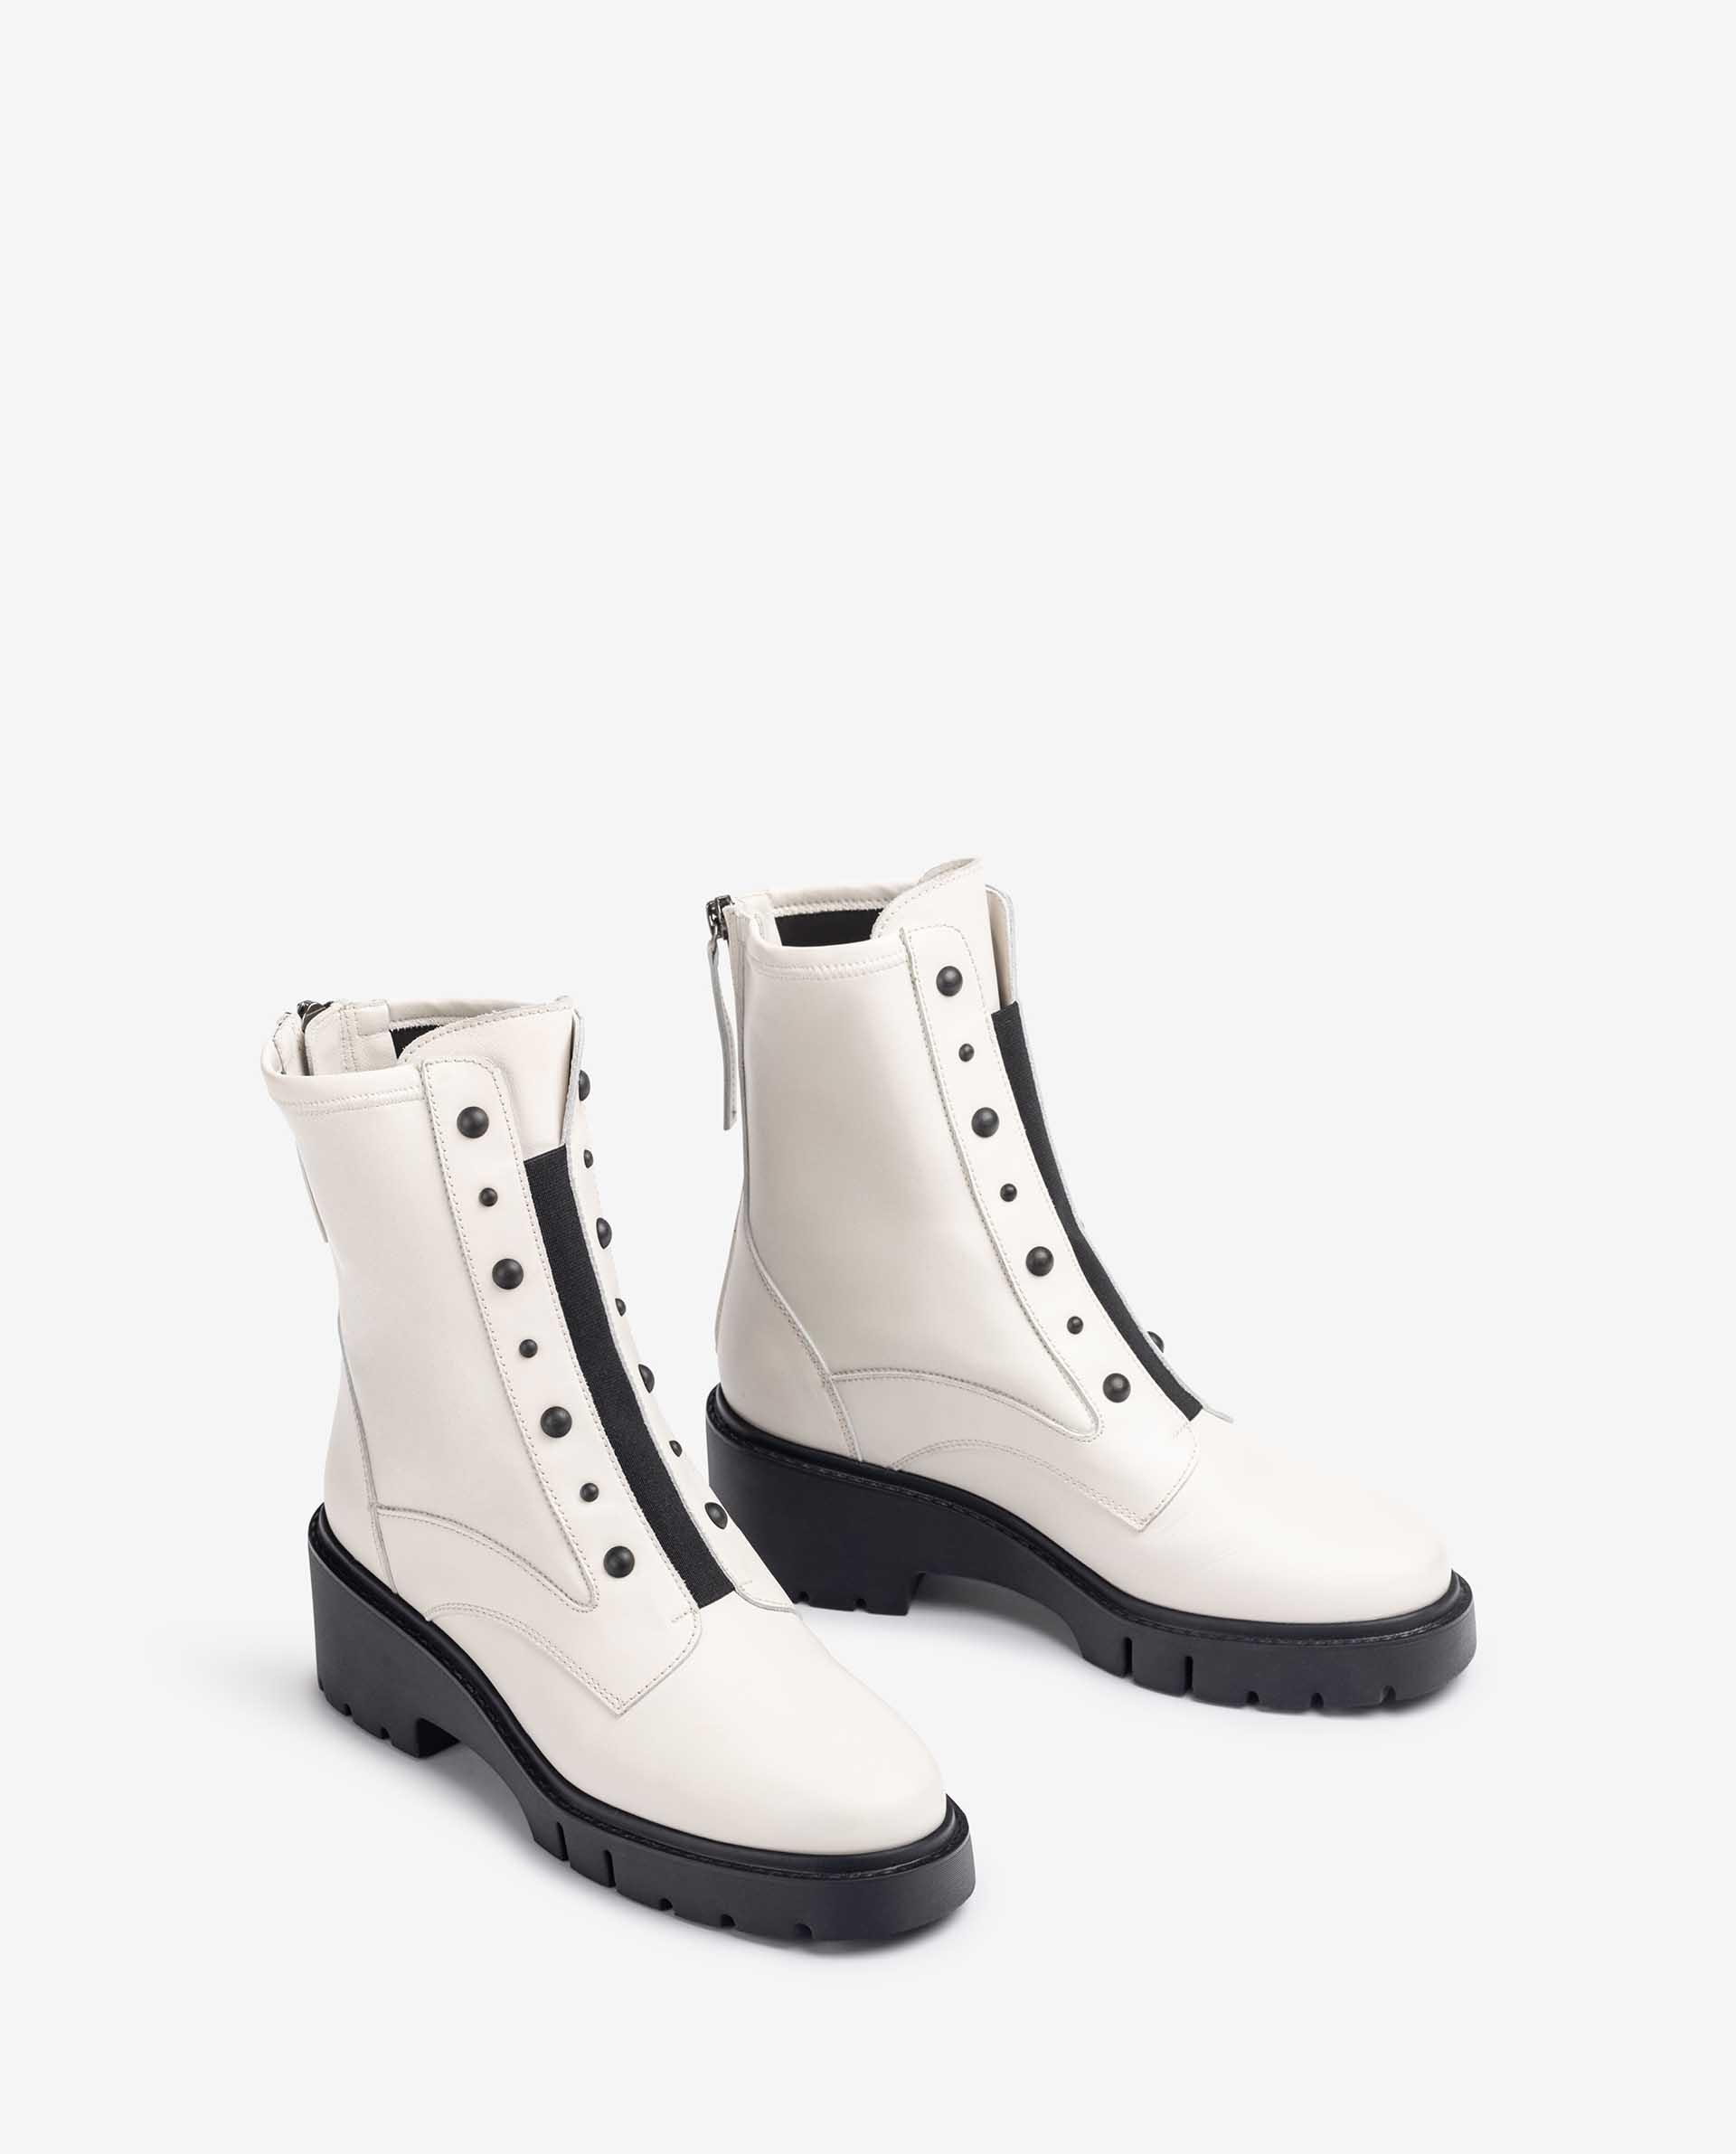 UNISA Biker style leather ankle boots with back zip JARBE_NF_STN 2